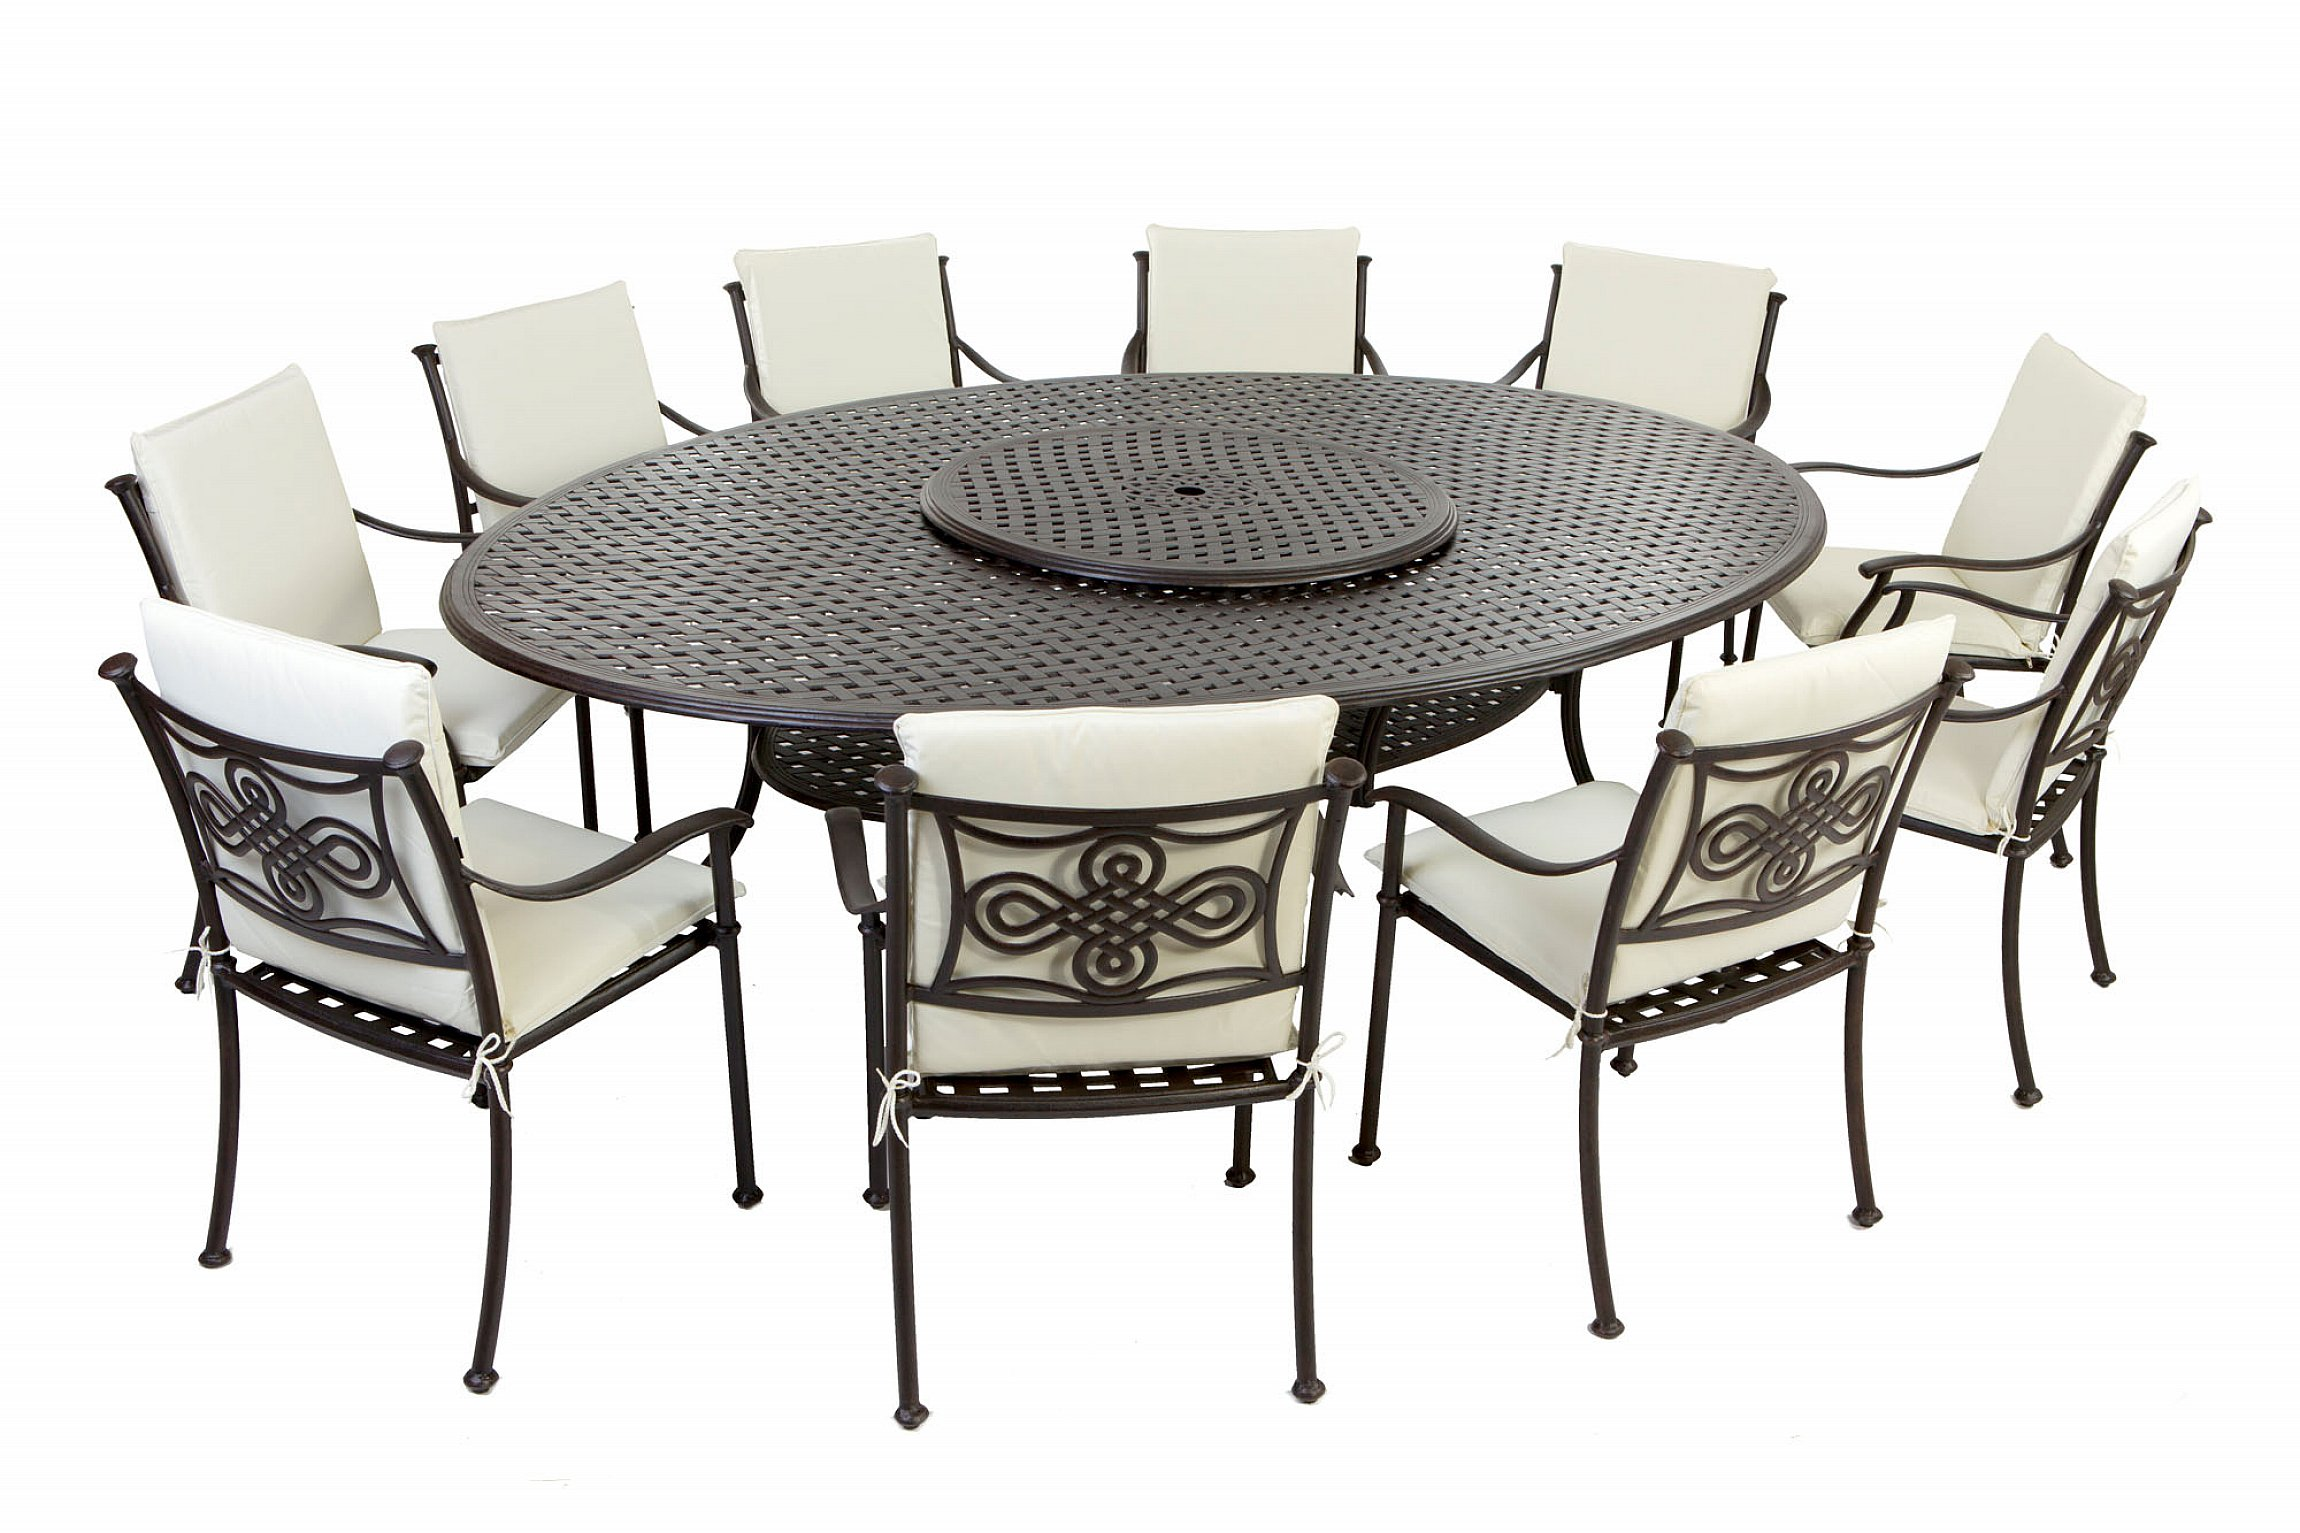 Sears Patio Furniture Sets | Sear Tires | Sears Patio Furniture